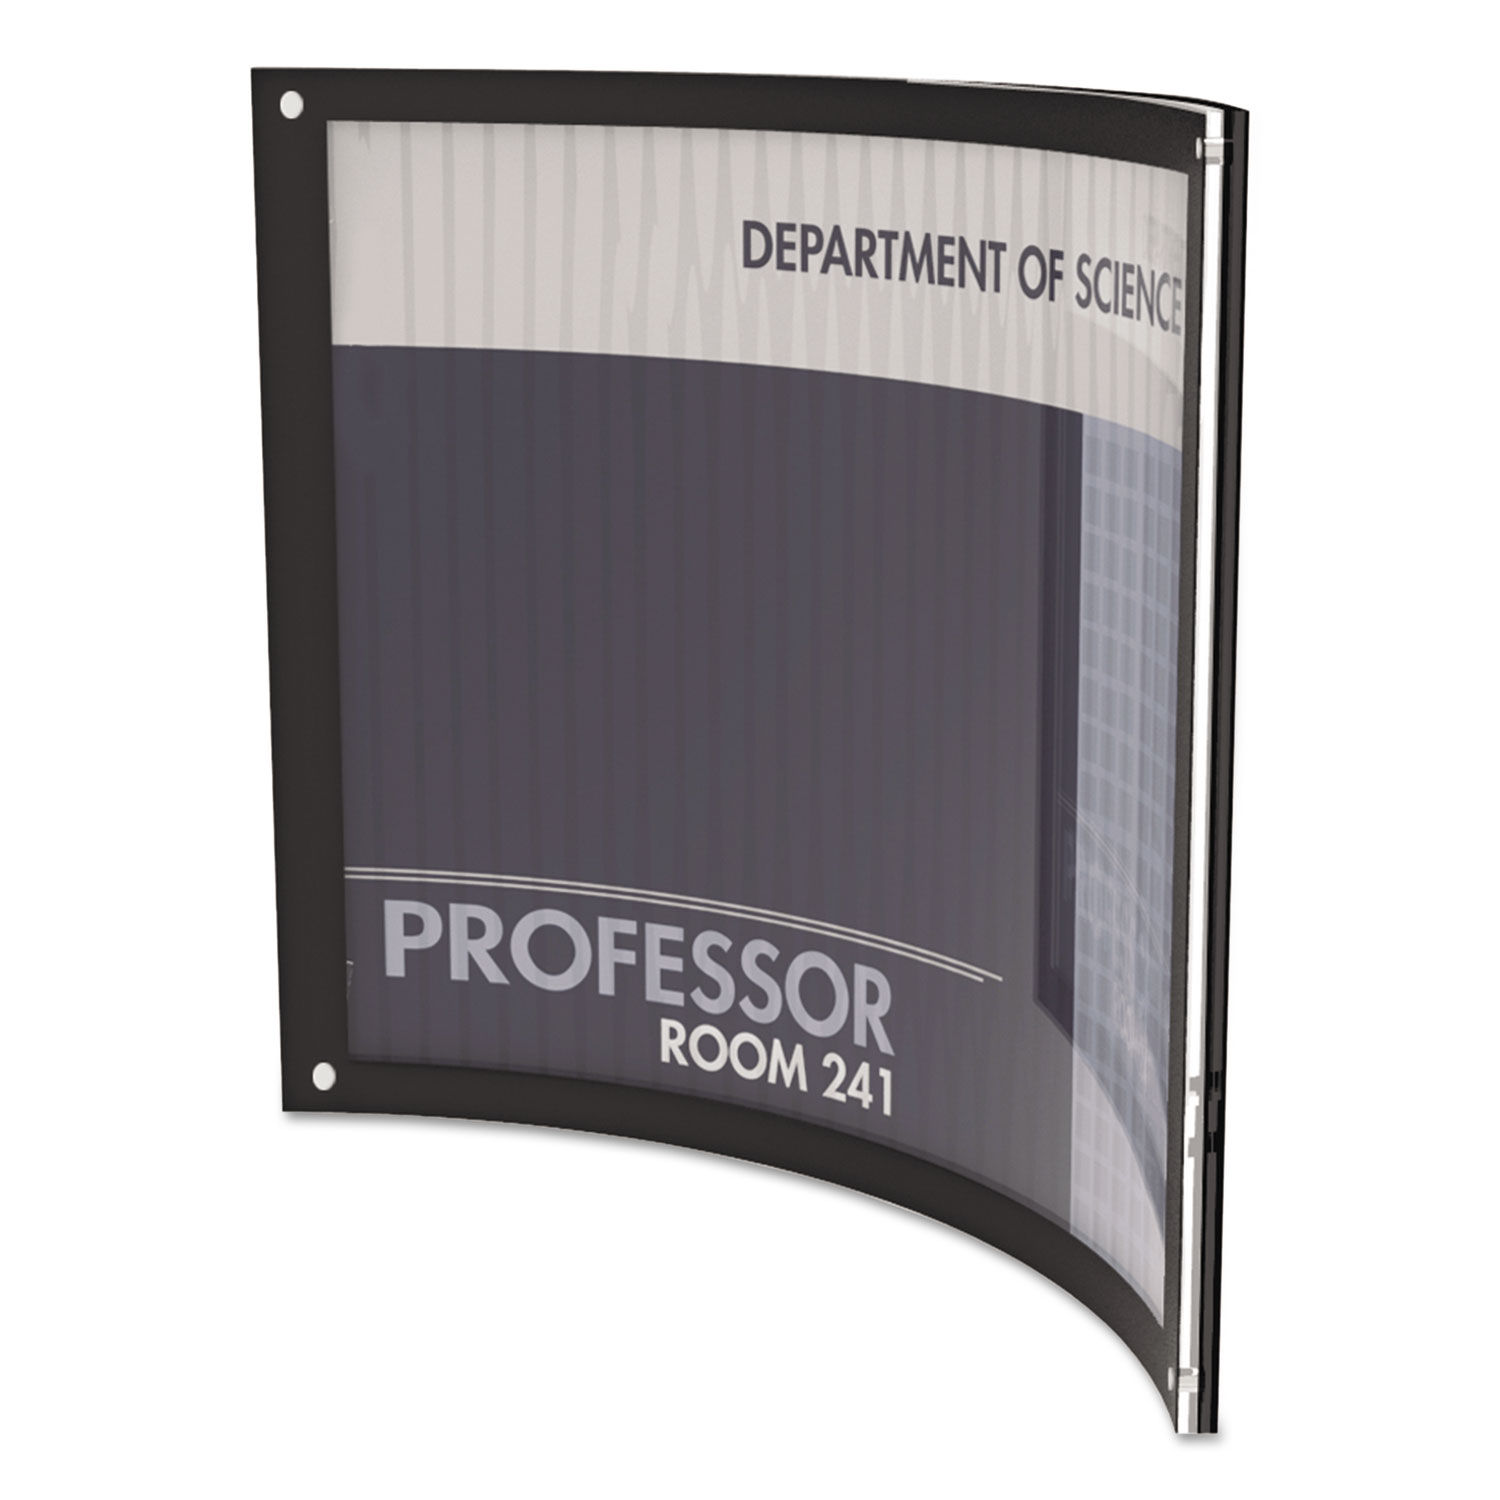 Document Frames Double Diploma Frame with Double Matting for 9 x 7 Tall Diploma with Black 3/4 Frame